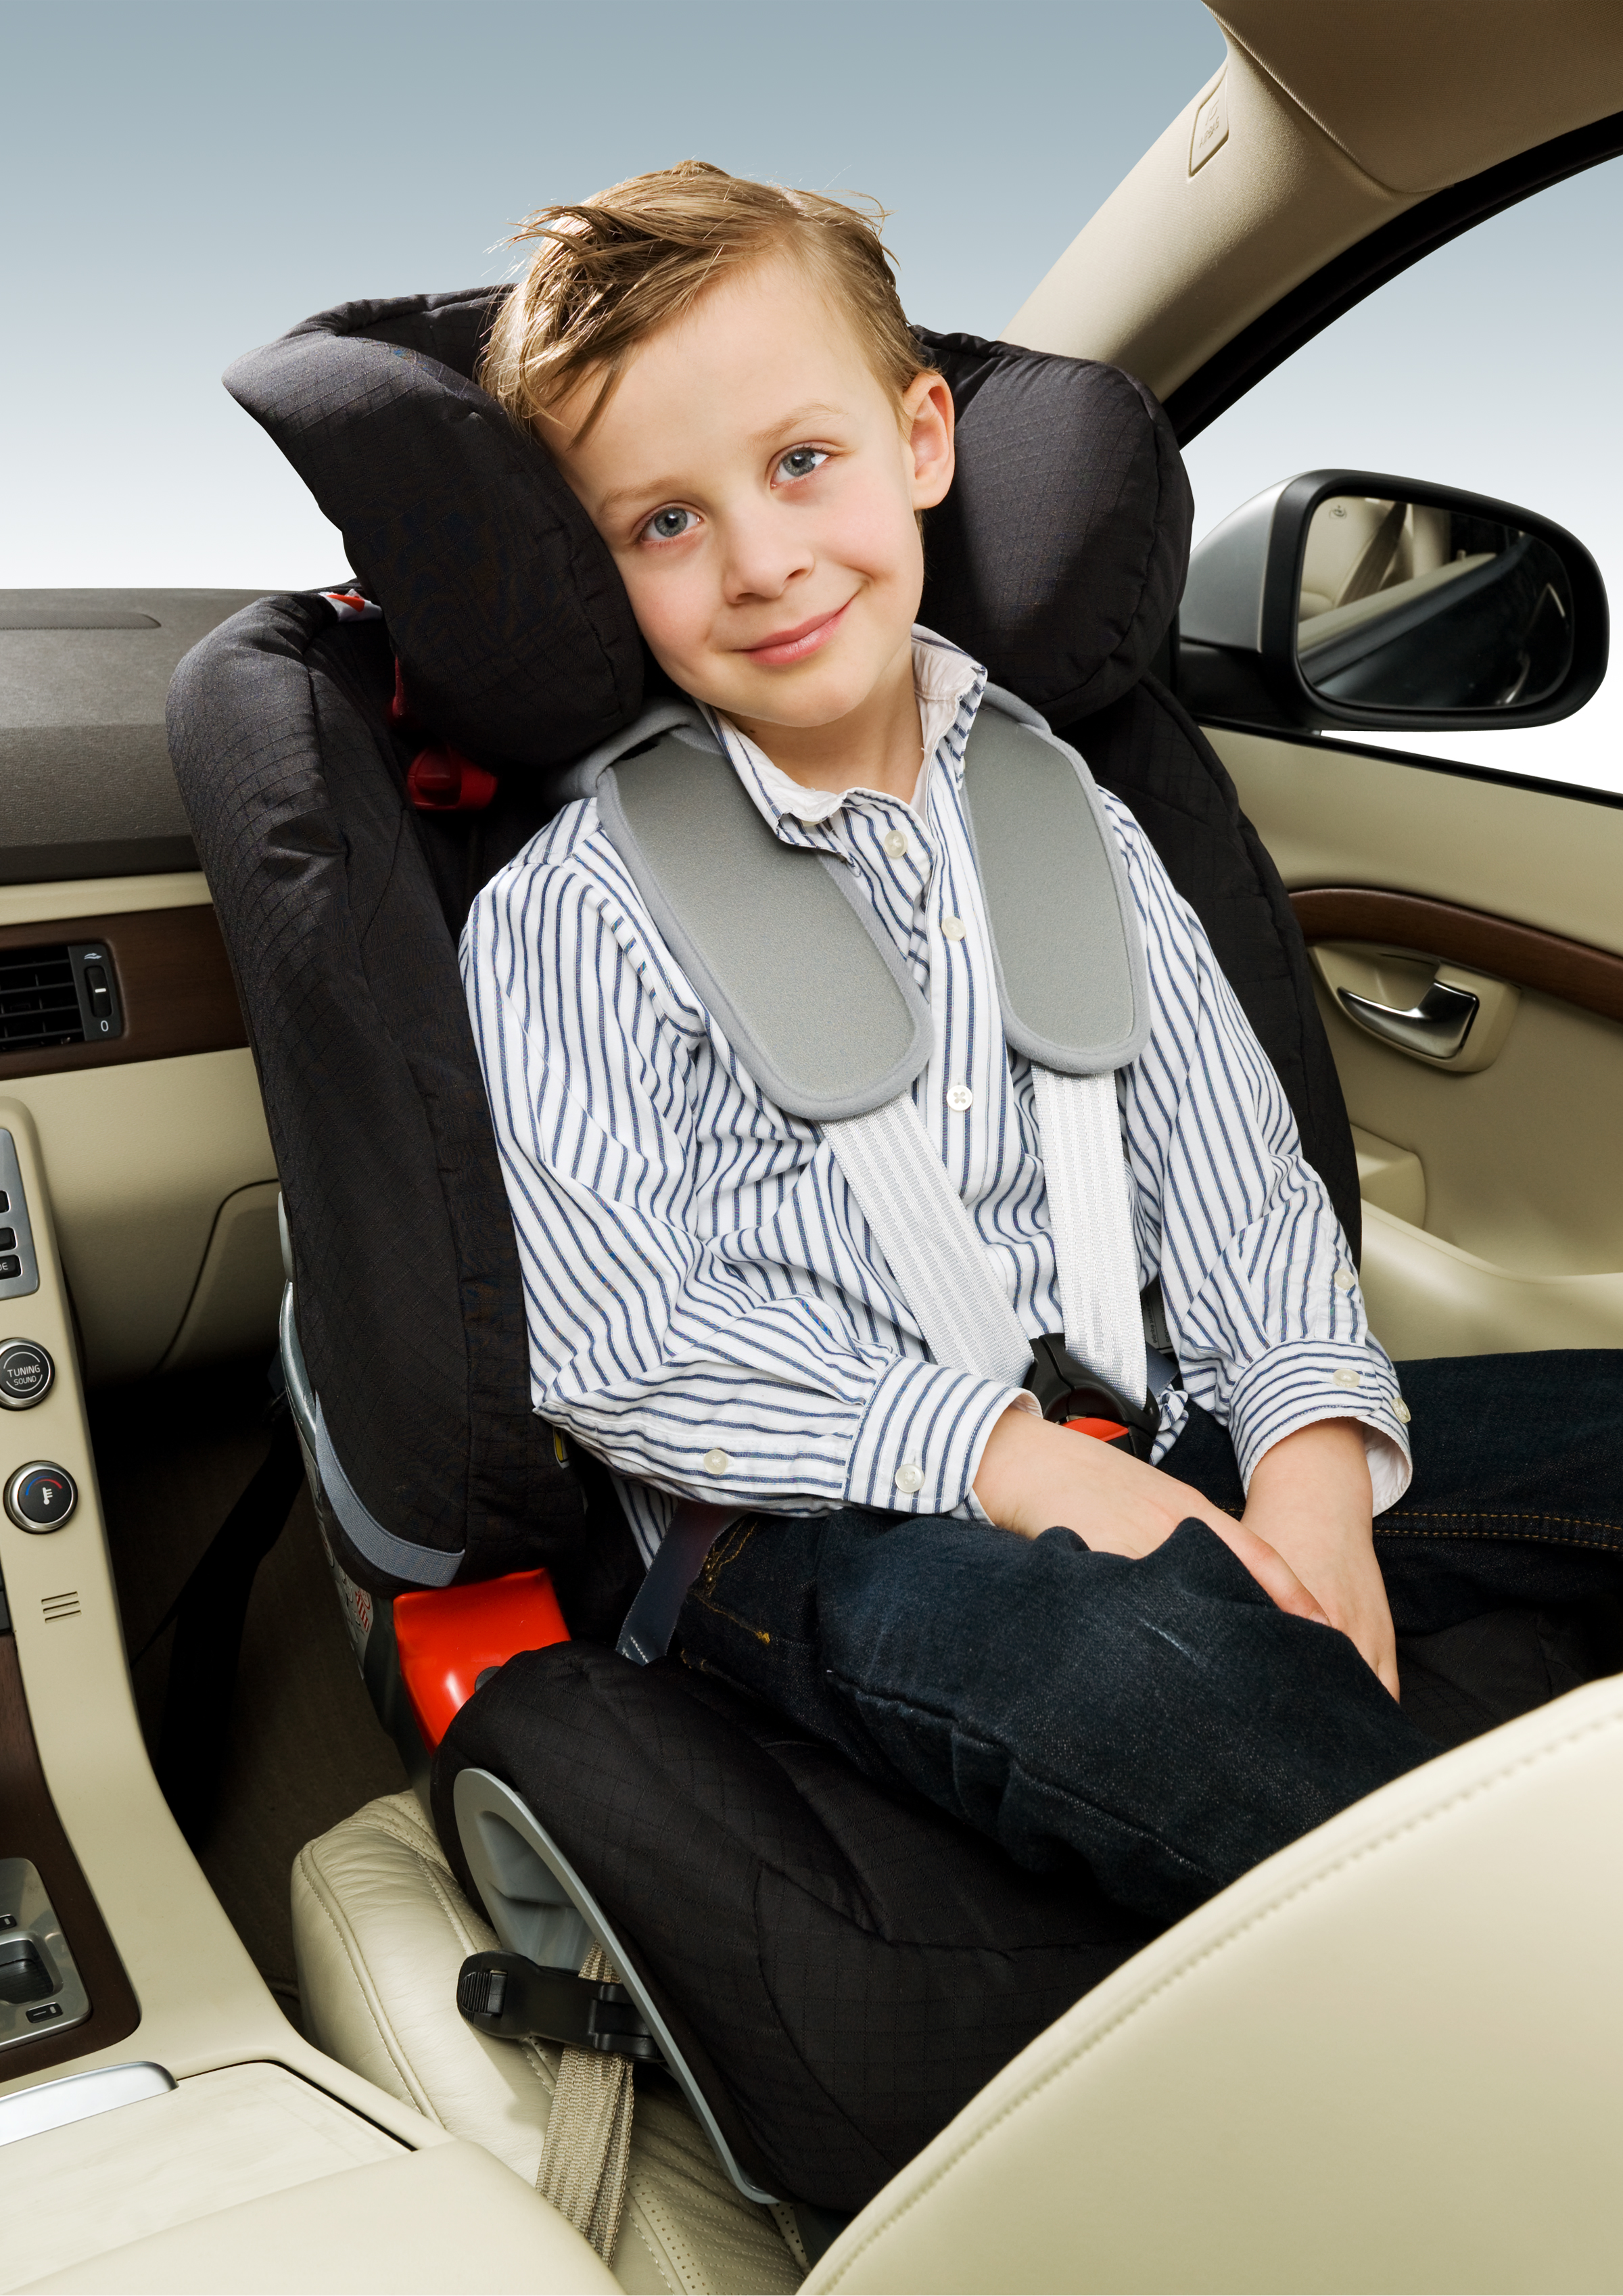 Britax Car Seat Us Volvo 39;s New Child Restraints Highlight Differences In